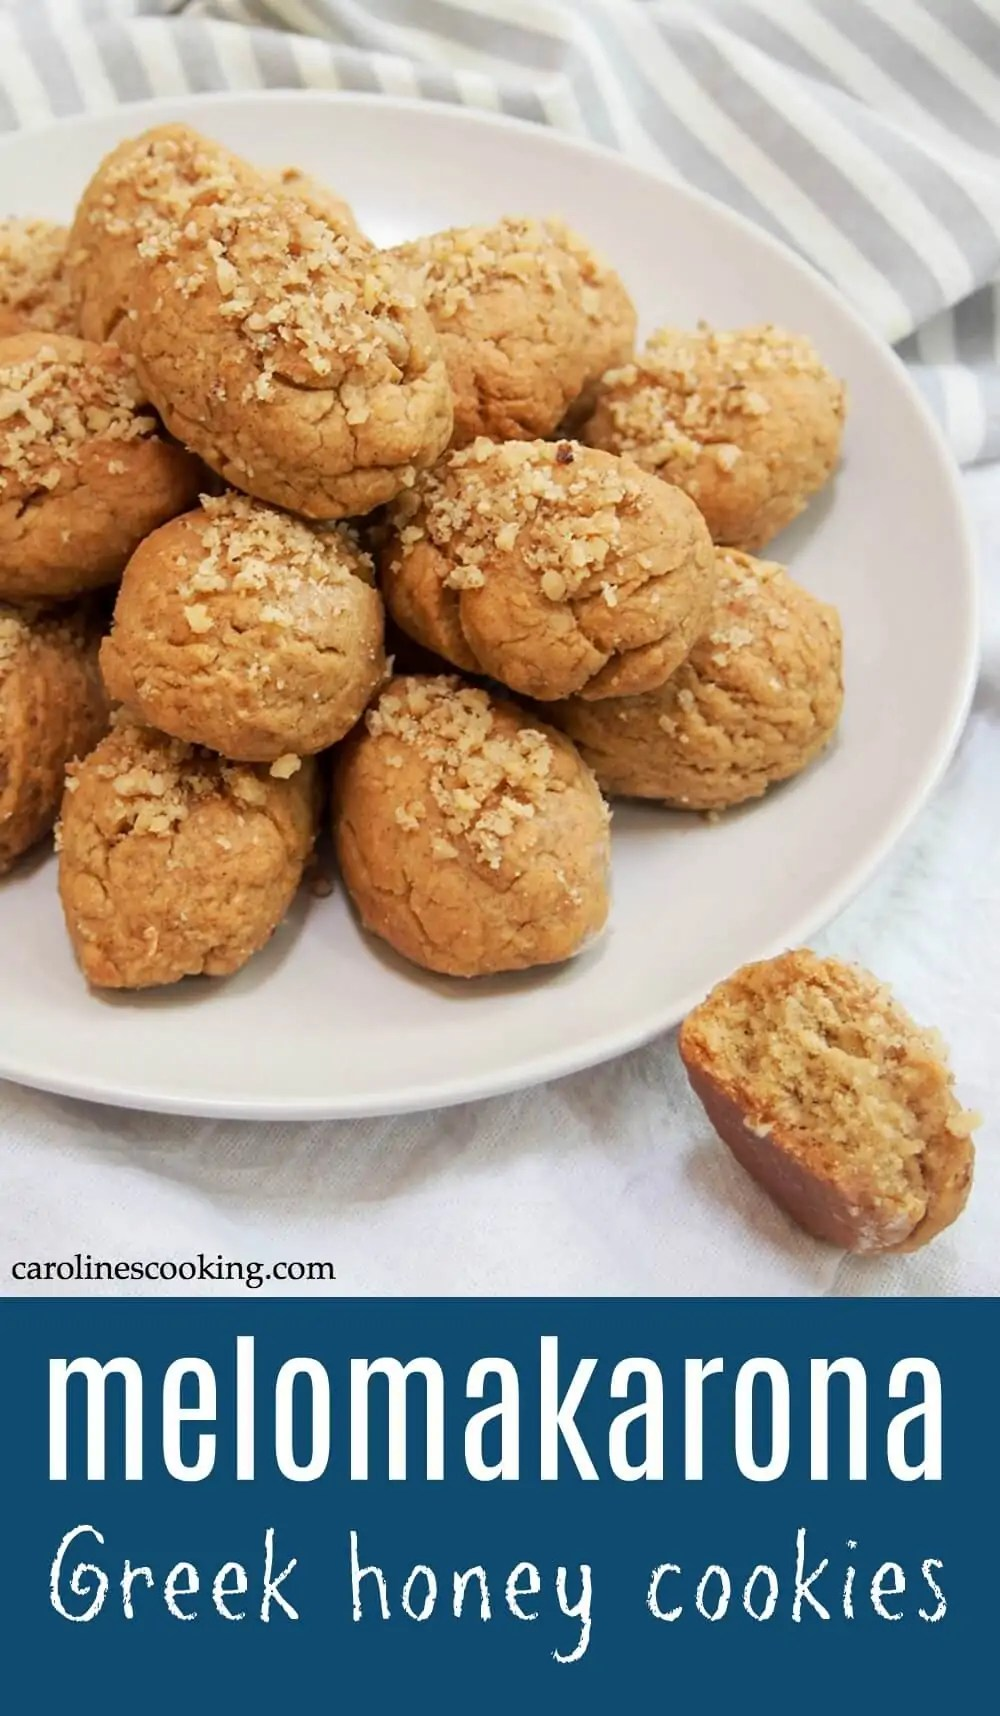 Melomakarona are a classic Greek cookie, with a gently spiced flavor in the dough and finished by dipping them in honey syrup (why they're often called honey cookies). All combined makes these some tasty bites! #cookie #greekfood #christmas #baking #honey